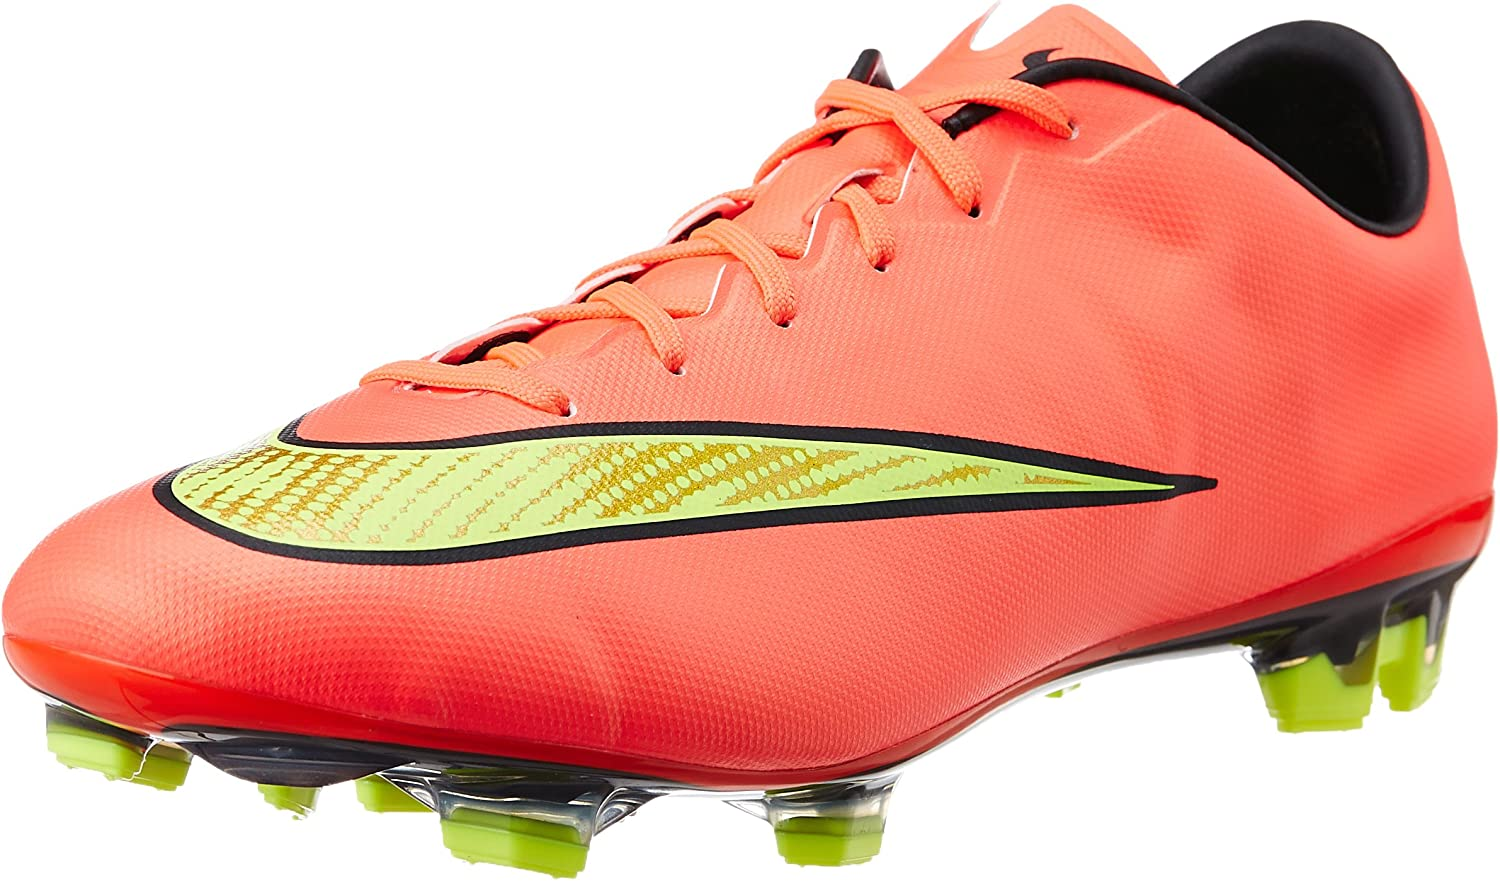 Nike Men's Mercurial Veloce Ii Firm Ground Football Boots